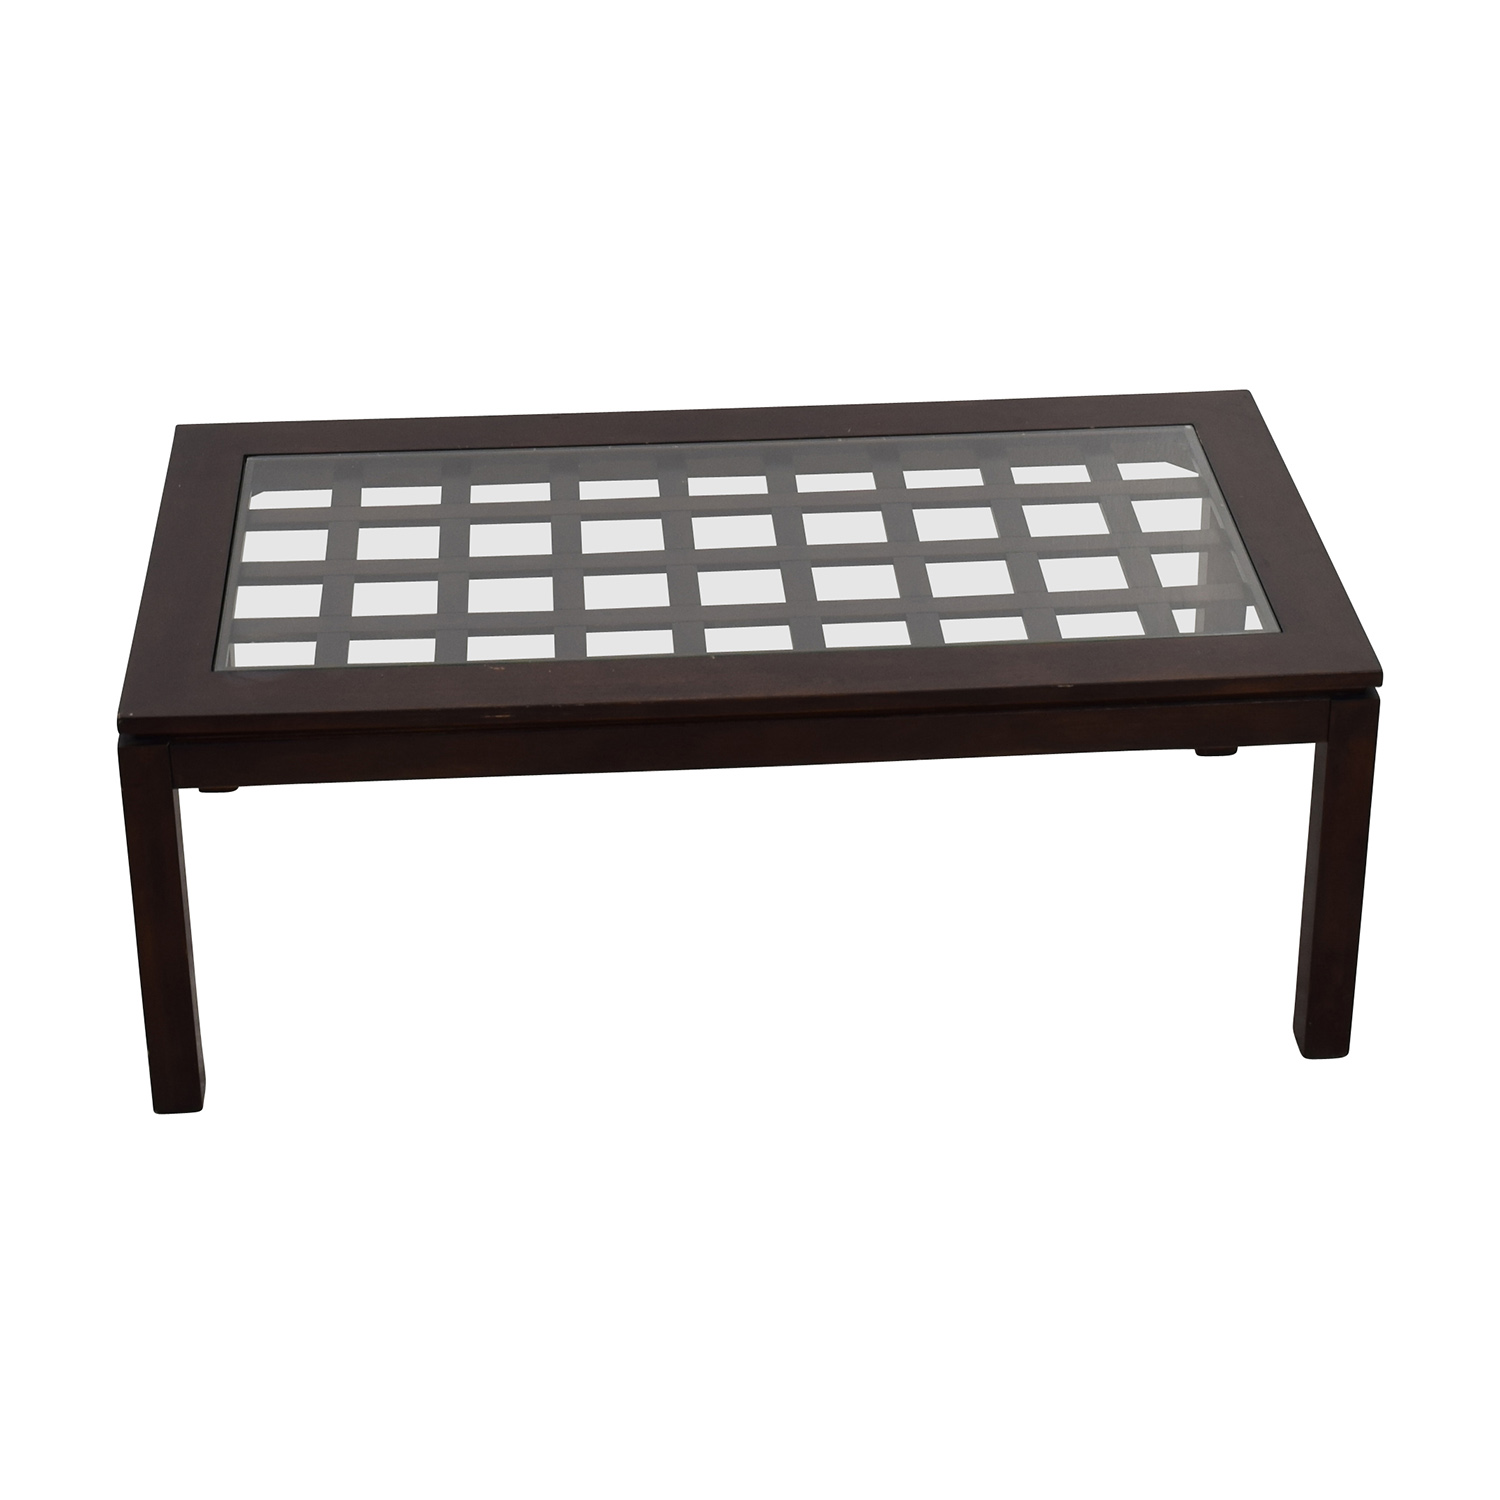 70% OFF Glass and Wood Coffee Table Tables